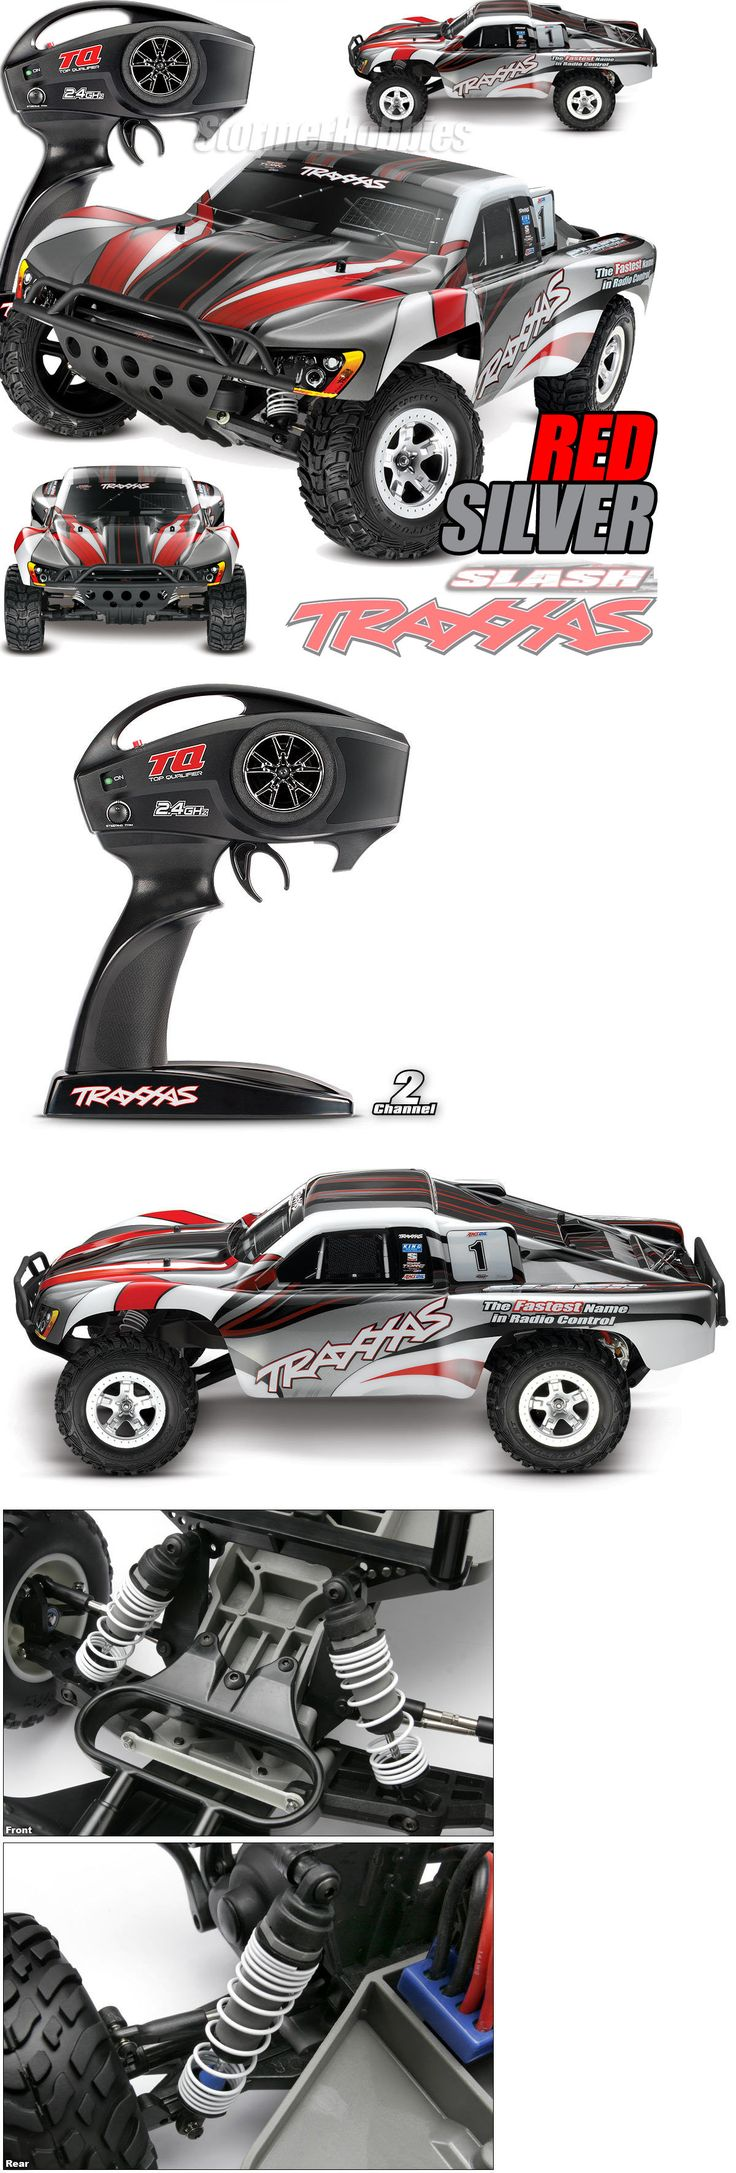 Cars trucks and motorcycles 182183 new traxxas slash xl 5 2wd rtr